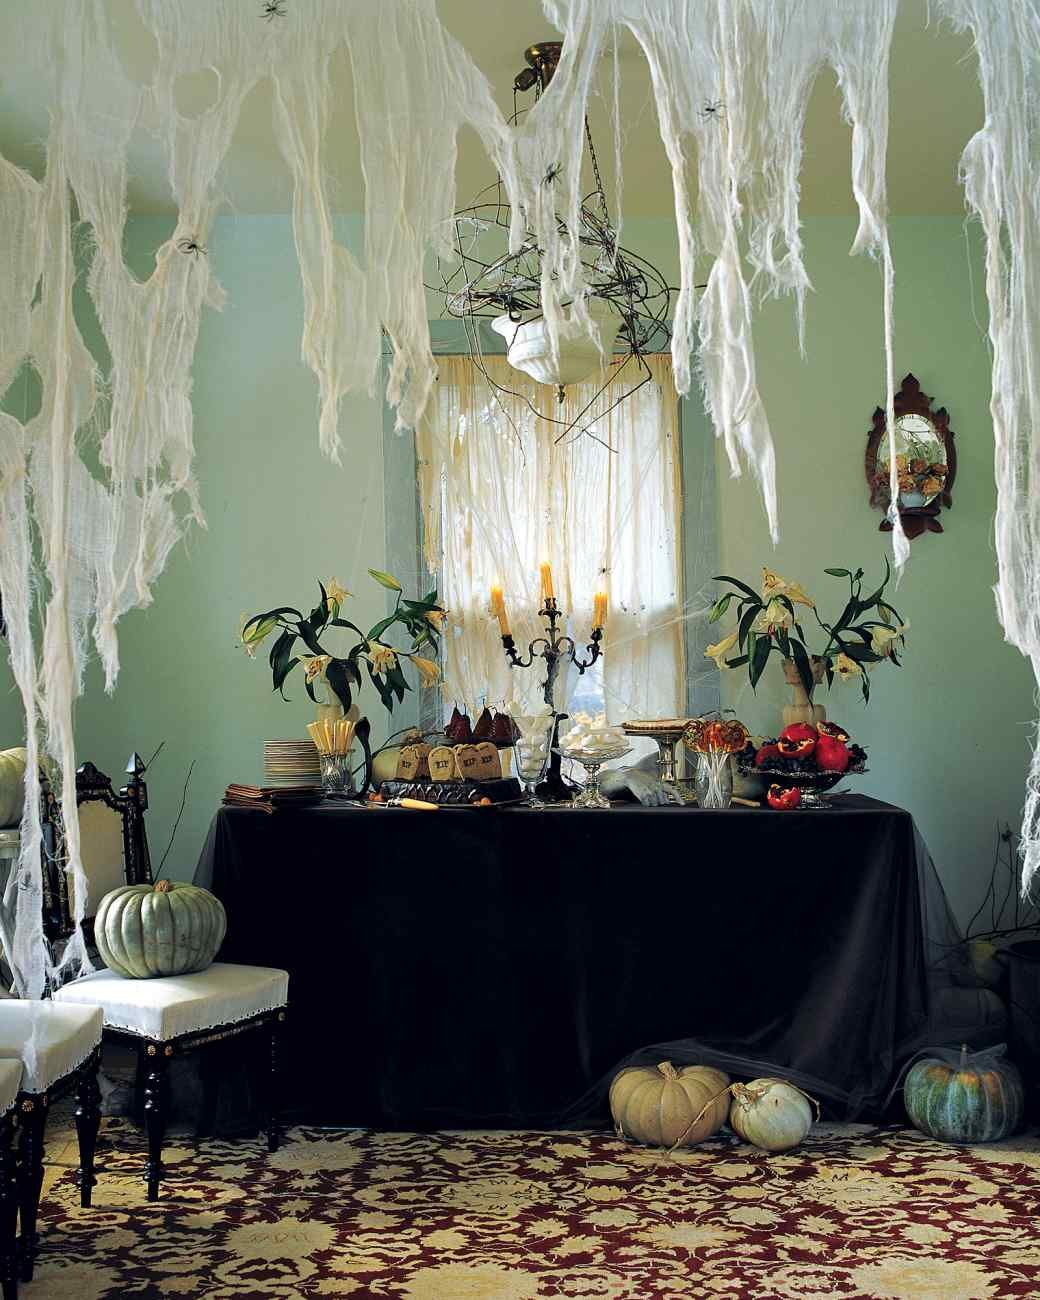 25 cheap halloween decorations ideas - Halloween Decorations On A Budget